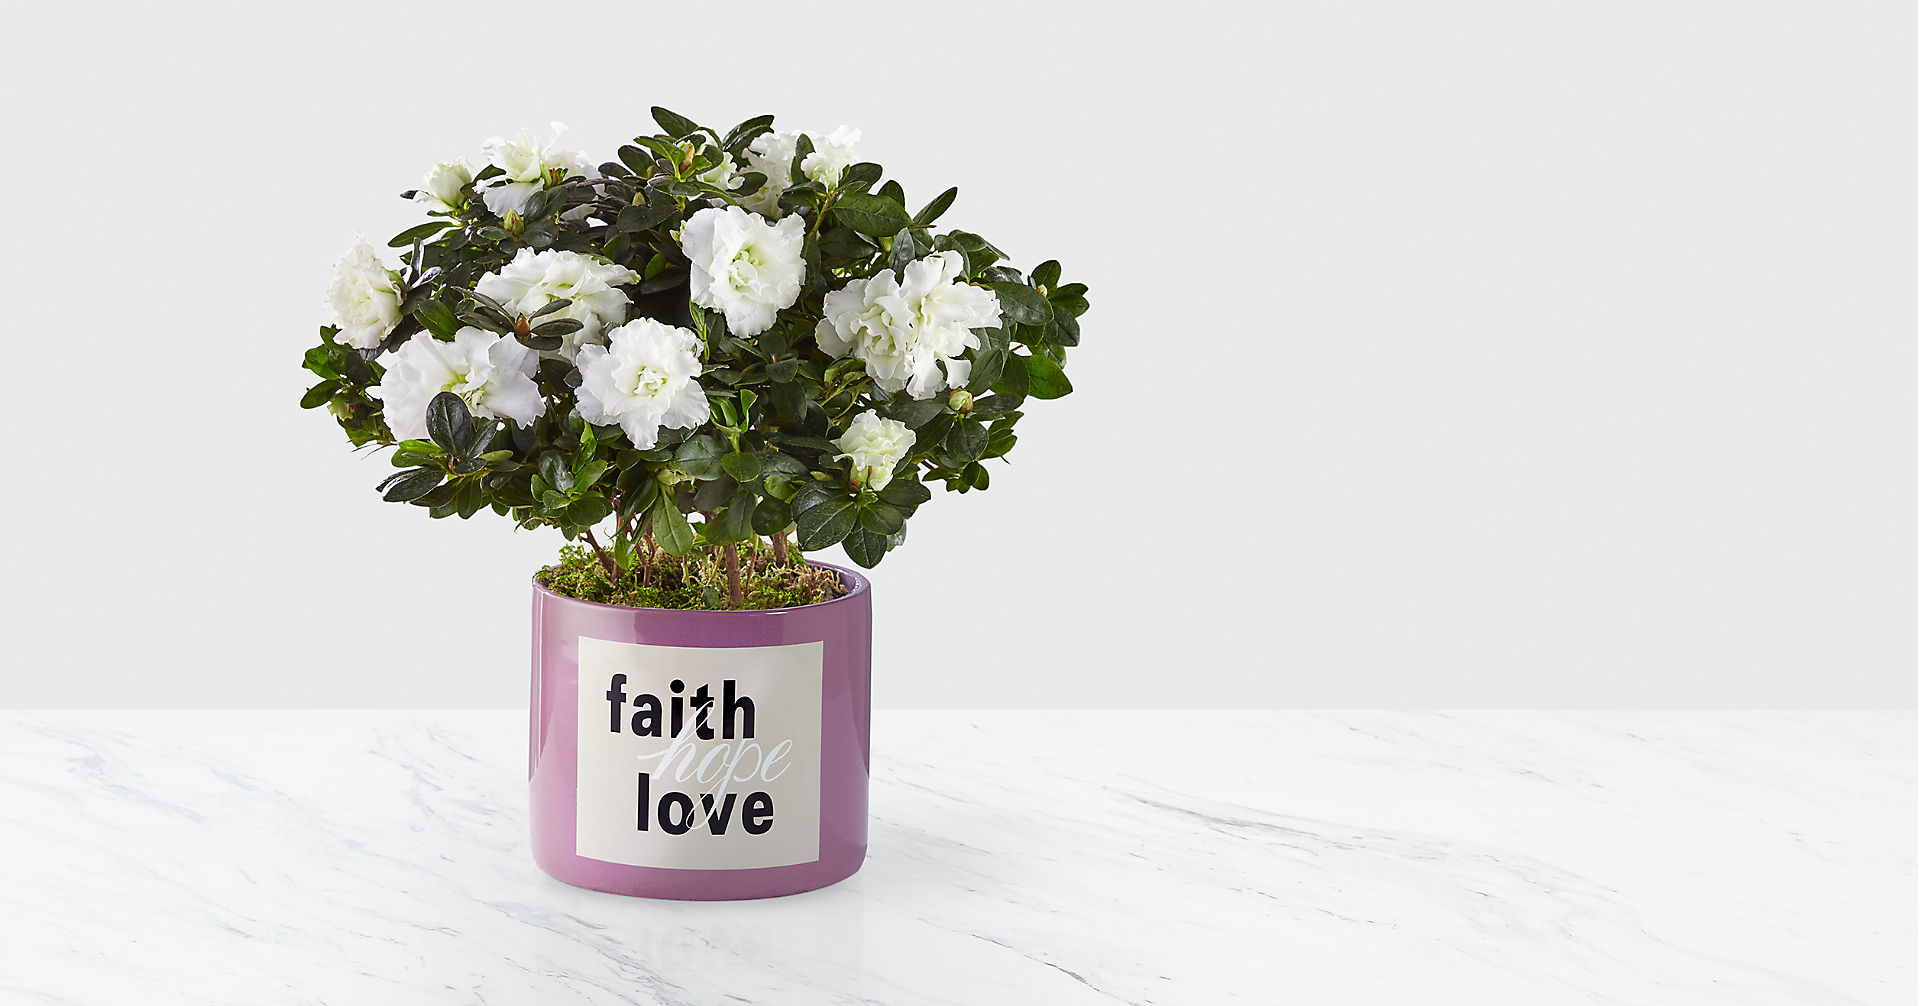 Faith Hope Love Azalea - Image 1 Of 2